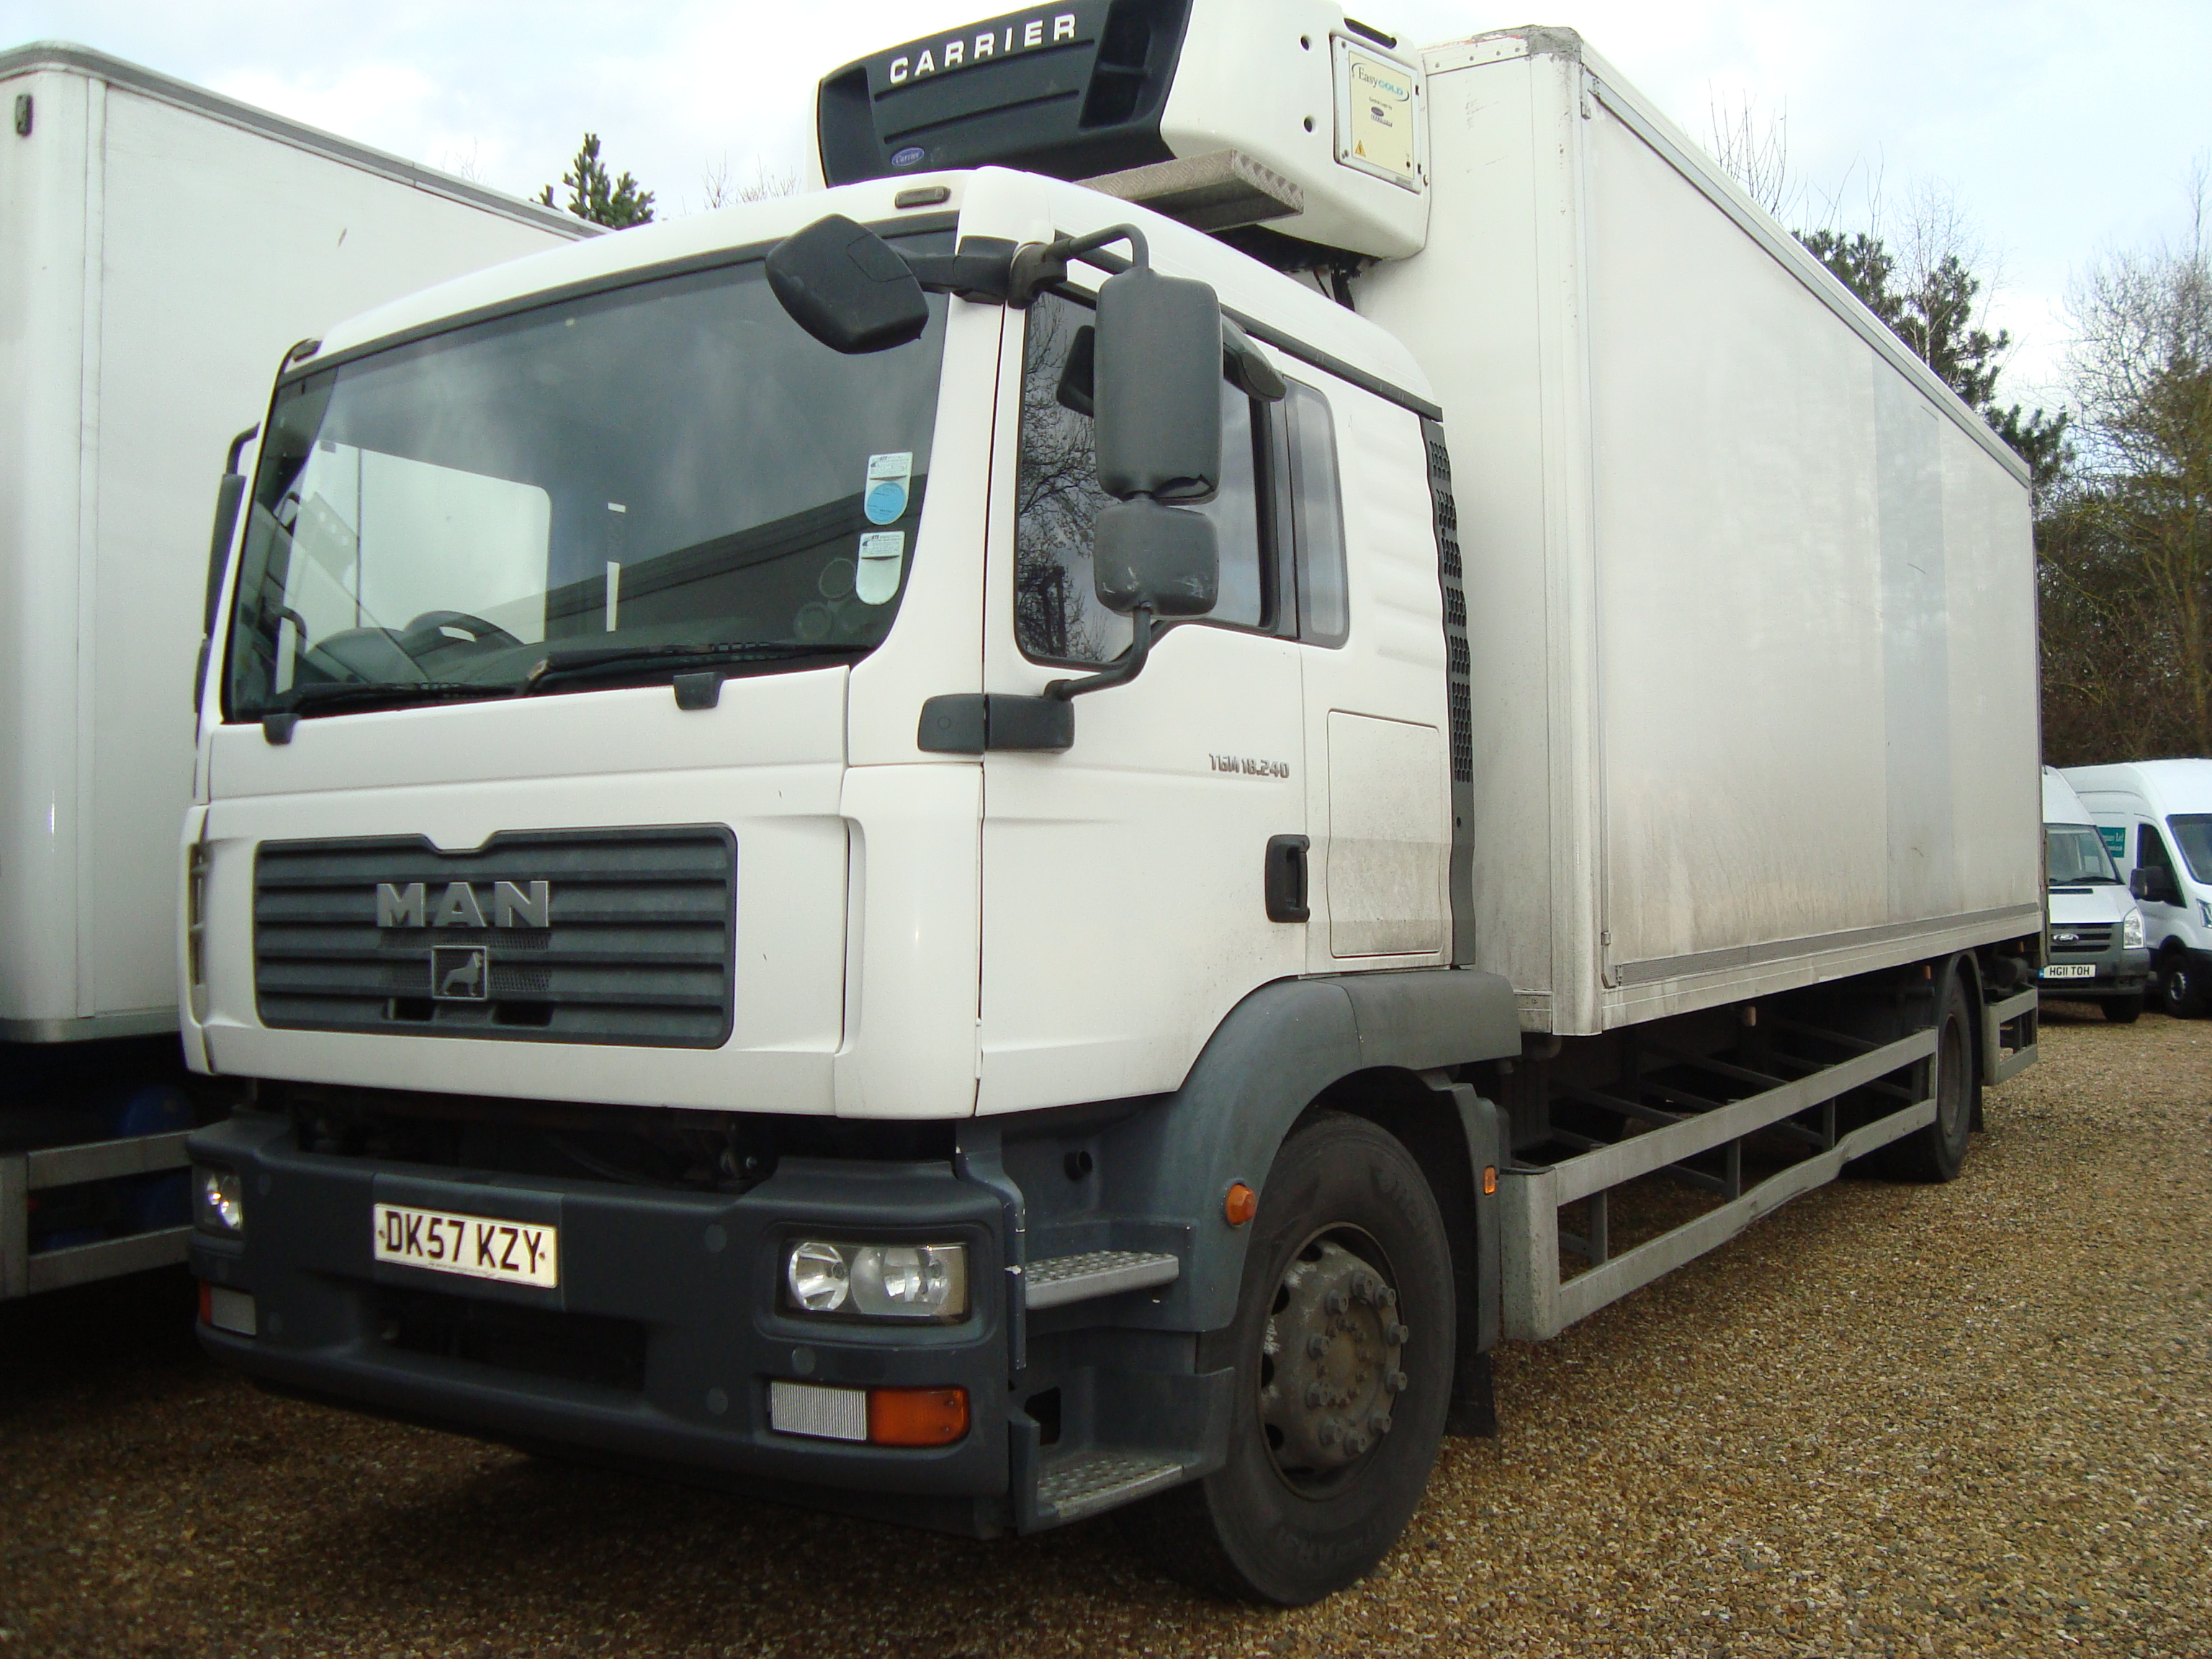 Man Tgm18 240 Sleeper Cab Twin Axle Rigid Refrigerated